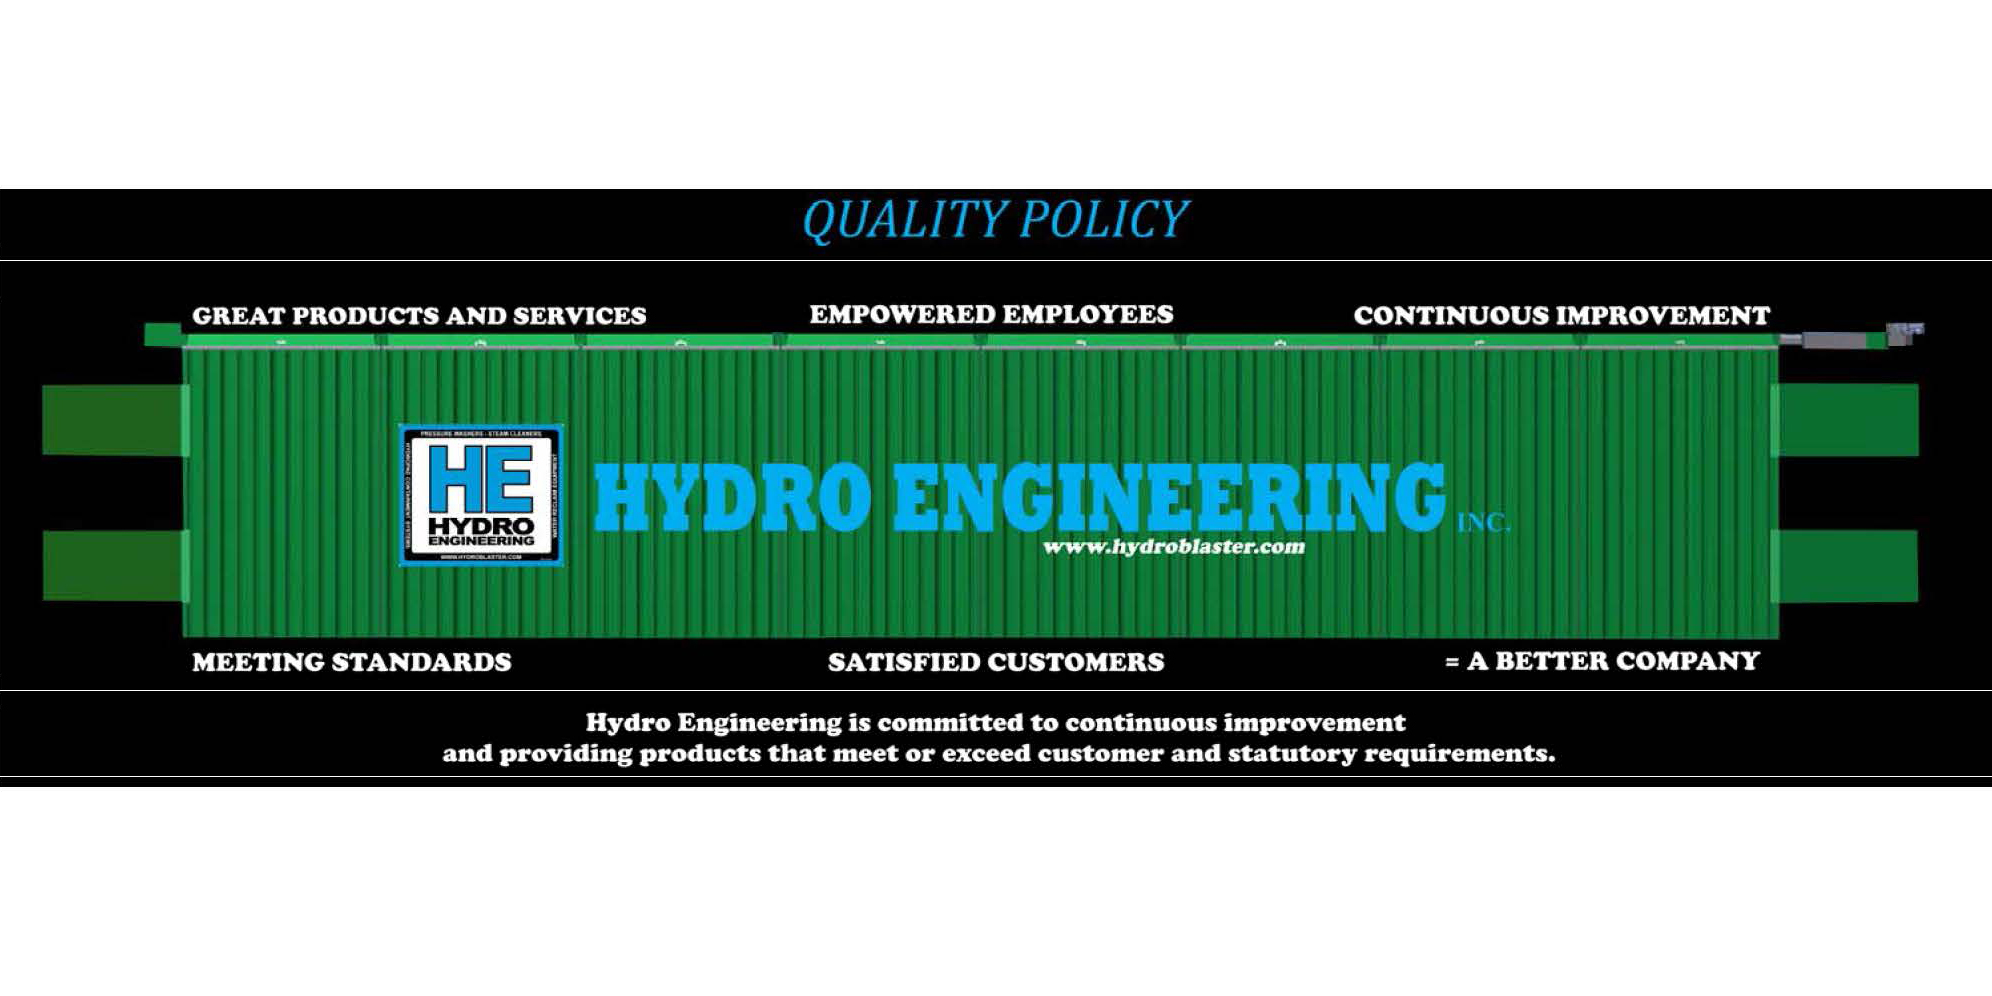 Hydro Engineering Quality Policy